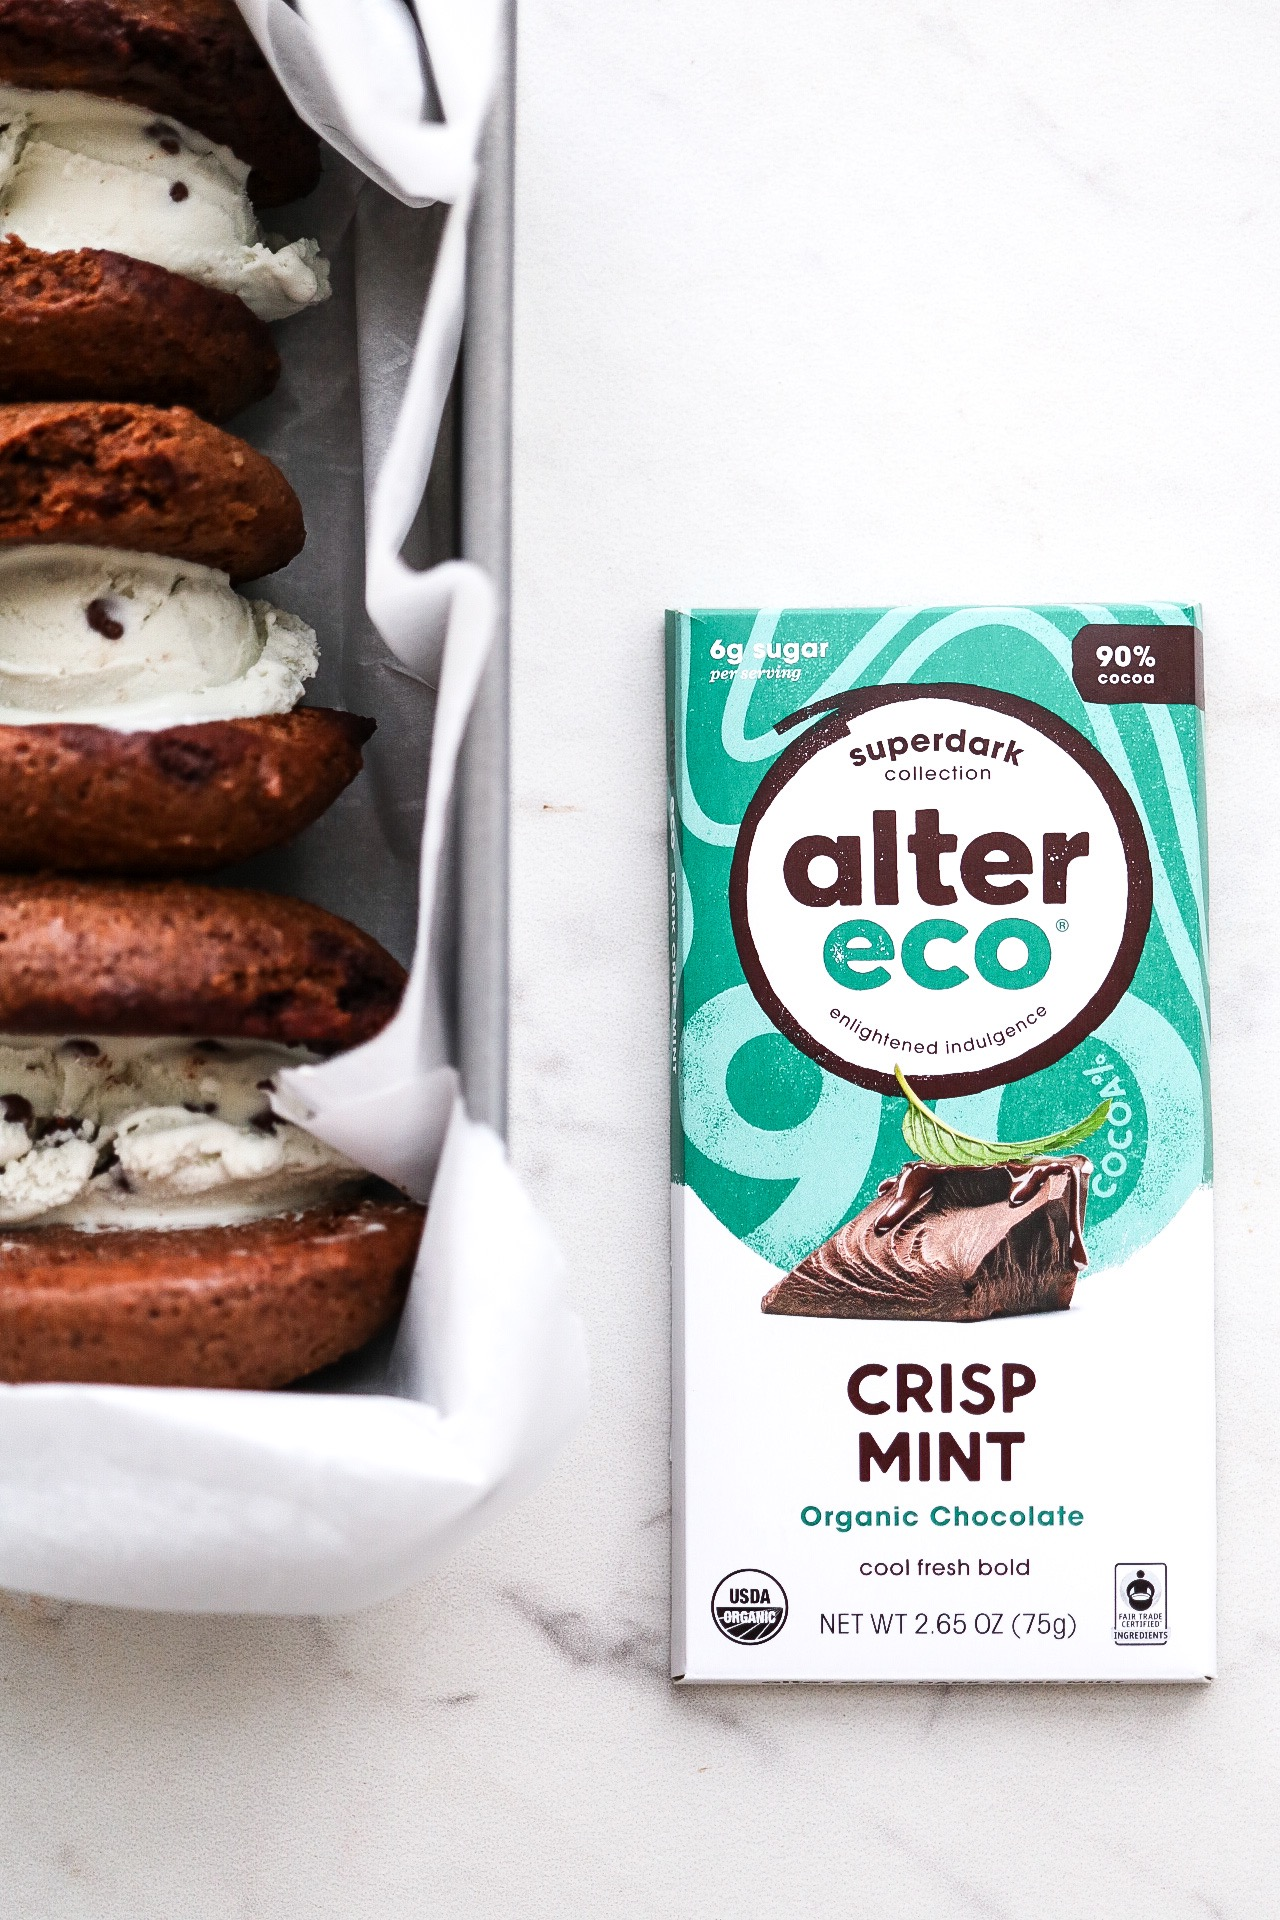 The best chocolate for the job - Alter Eco's new crisp mint organic chocolate is dark, fresh, and slightly sweet.